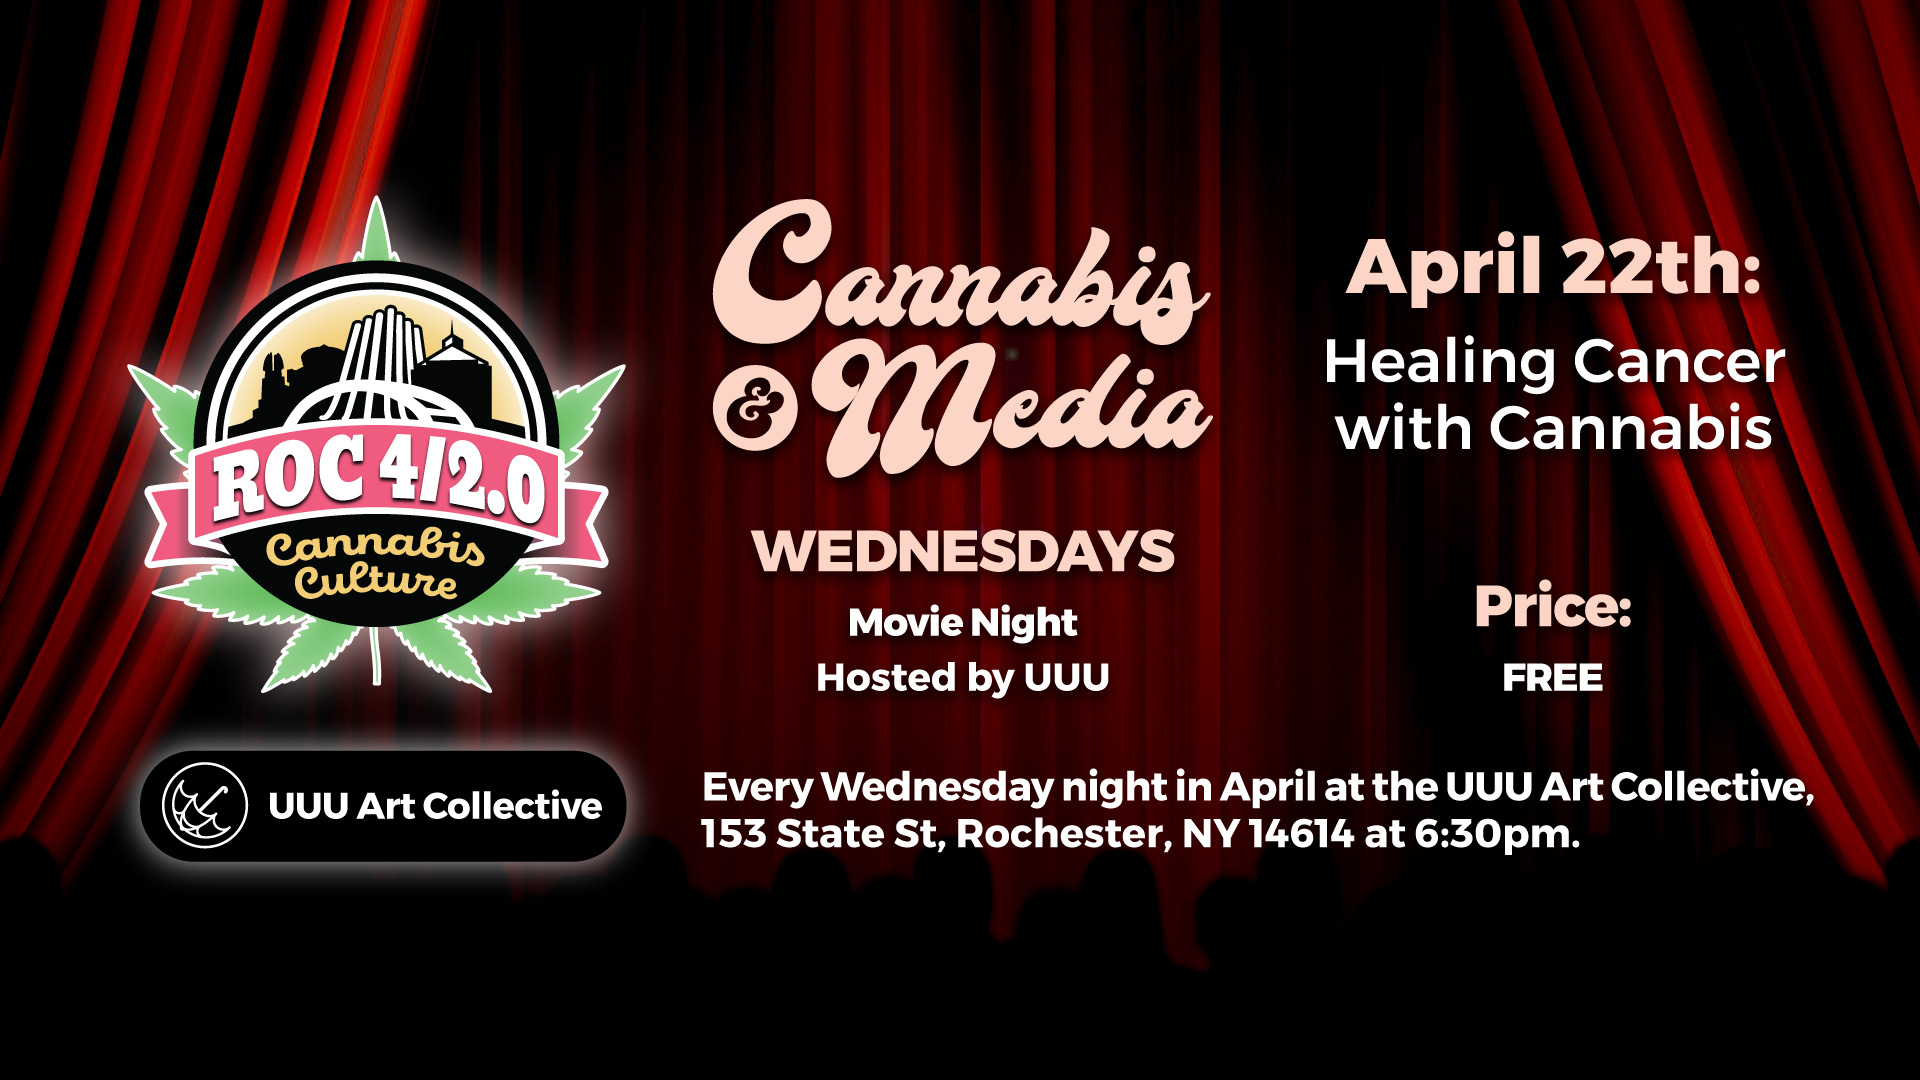 4/22 Healing Cancer with Cannabis